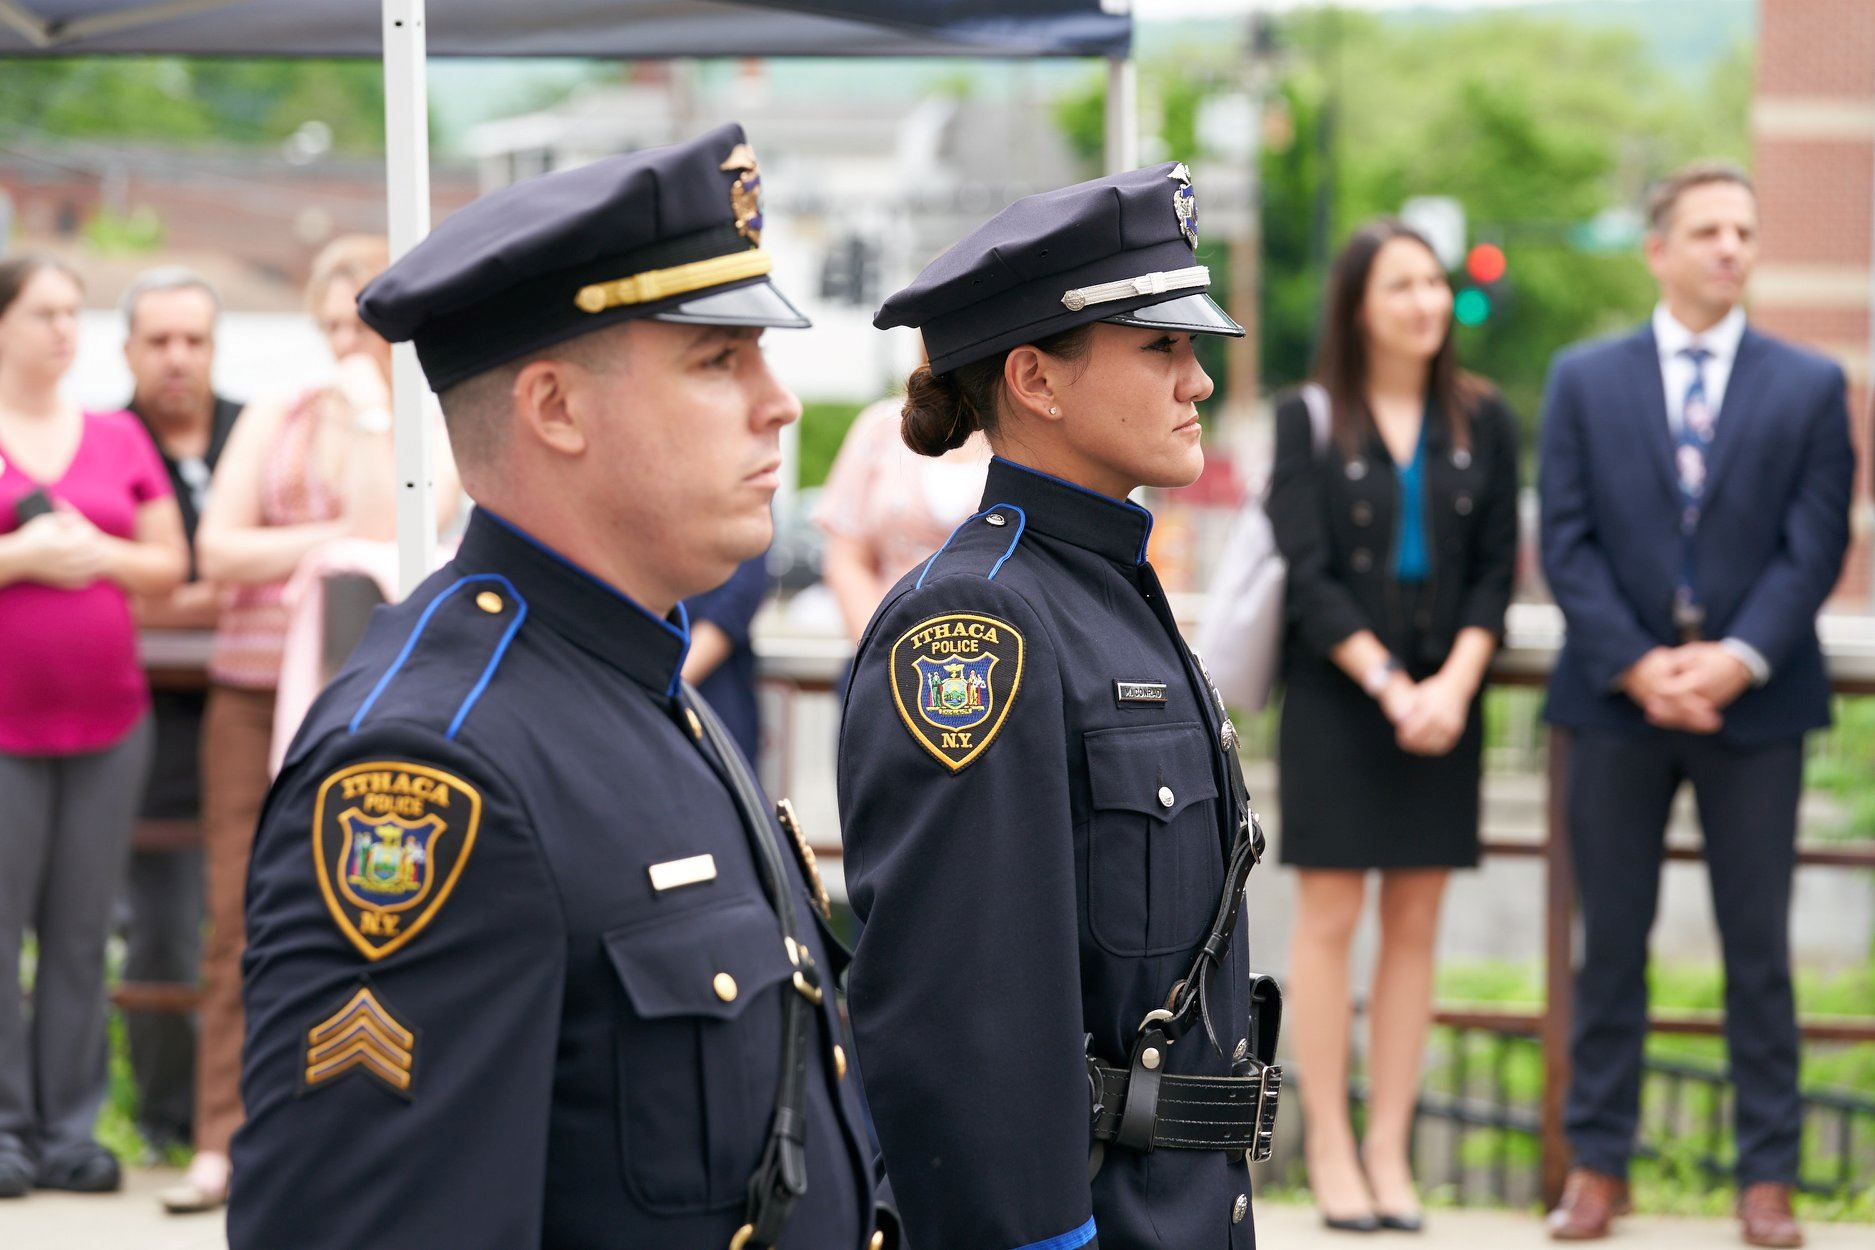 IPD Honor Guard